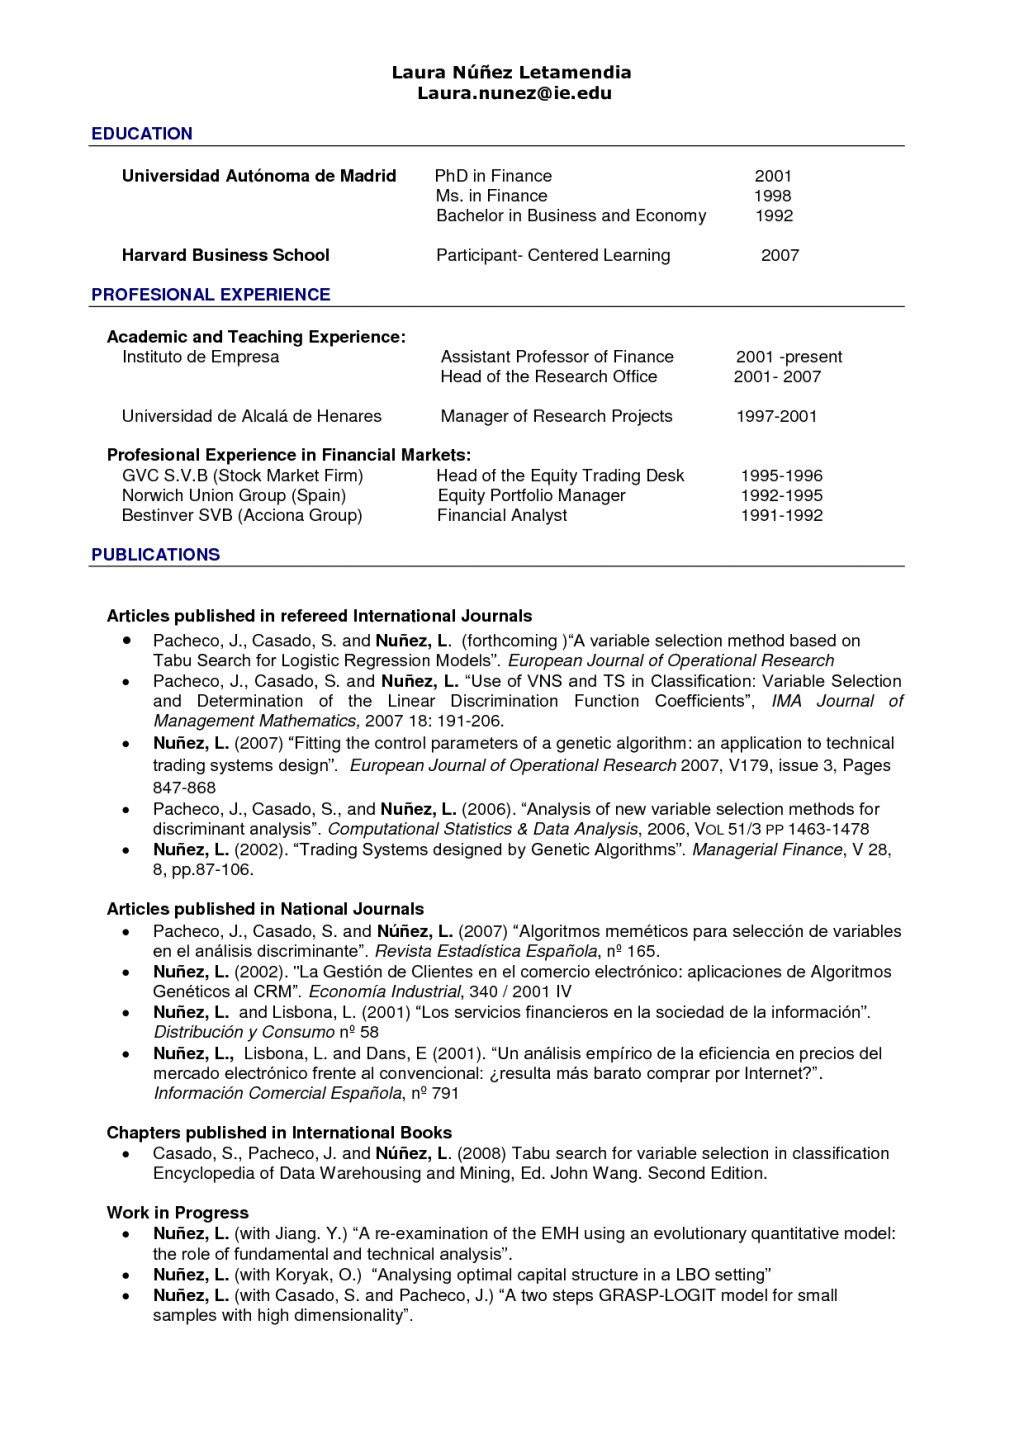 015 Cosy Harvard Mba Resume Format For Hbs Essays Business School Application Essay Questions Mad Tips Successfuls Sample Length Formidable Word Limit Question 2018 Large